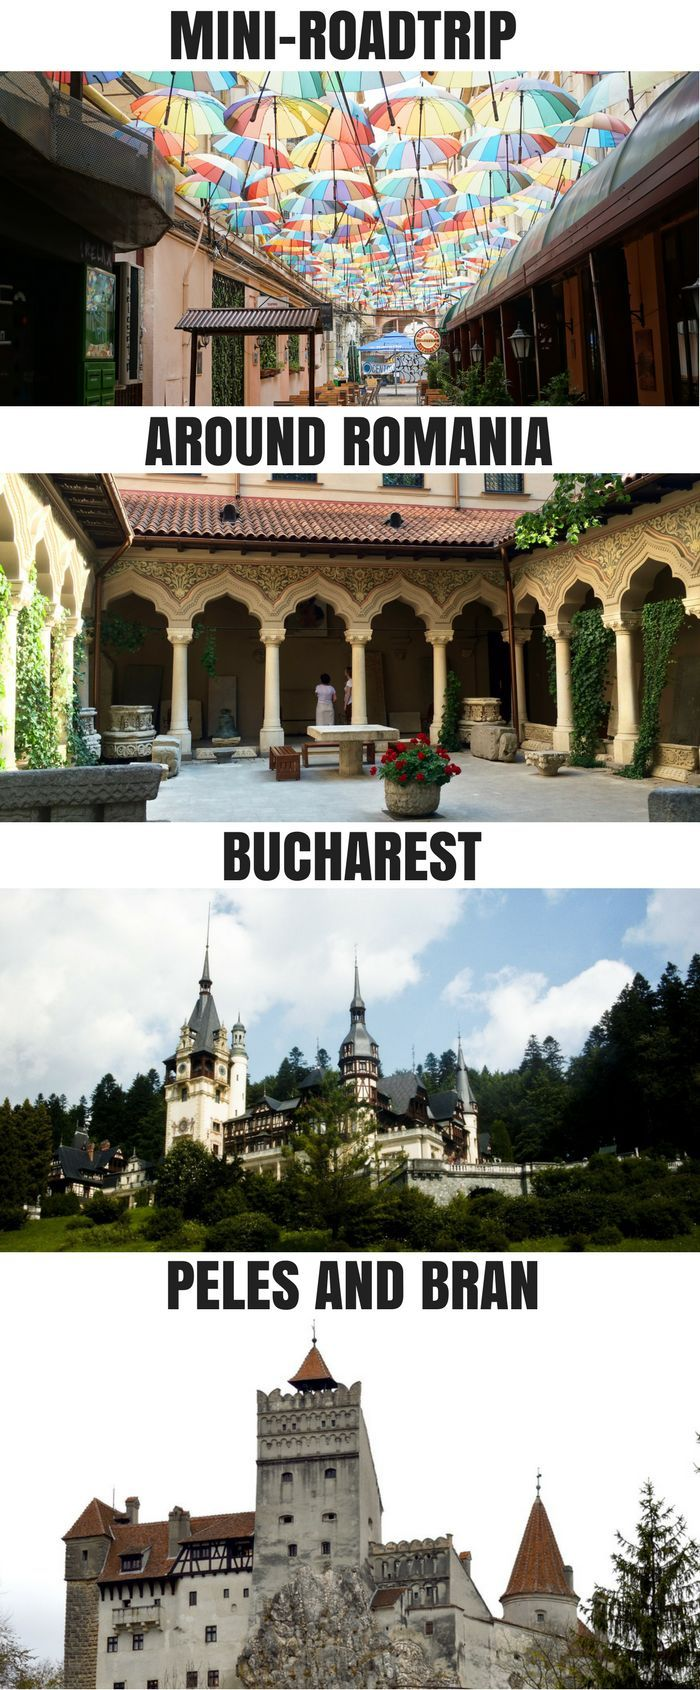 Weekend road trip around Romania: Bucharest, Bran Castle (Dracula Castle) in Transylvania and castle Peles